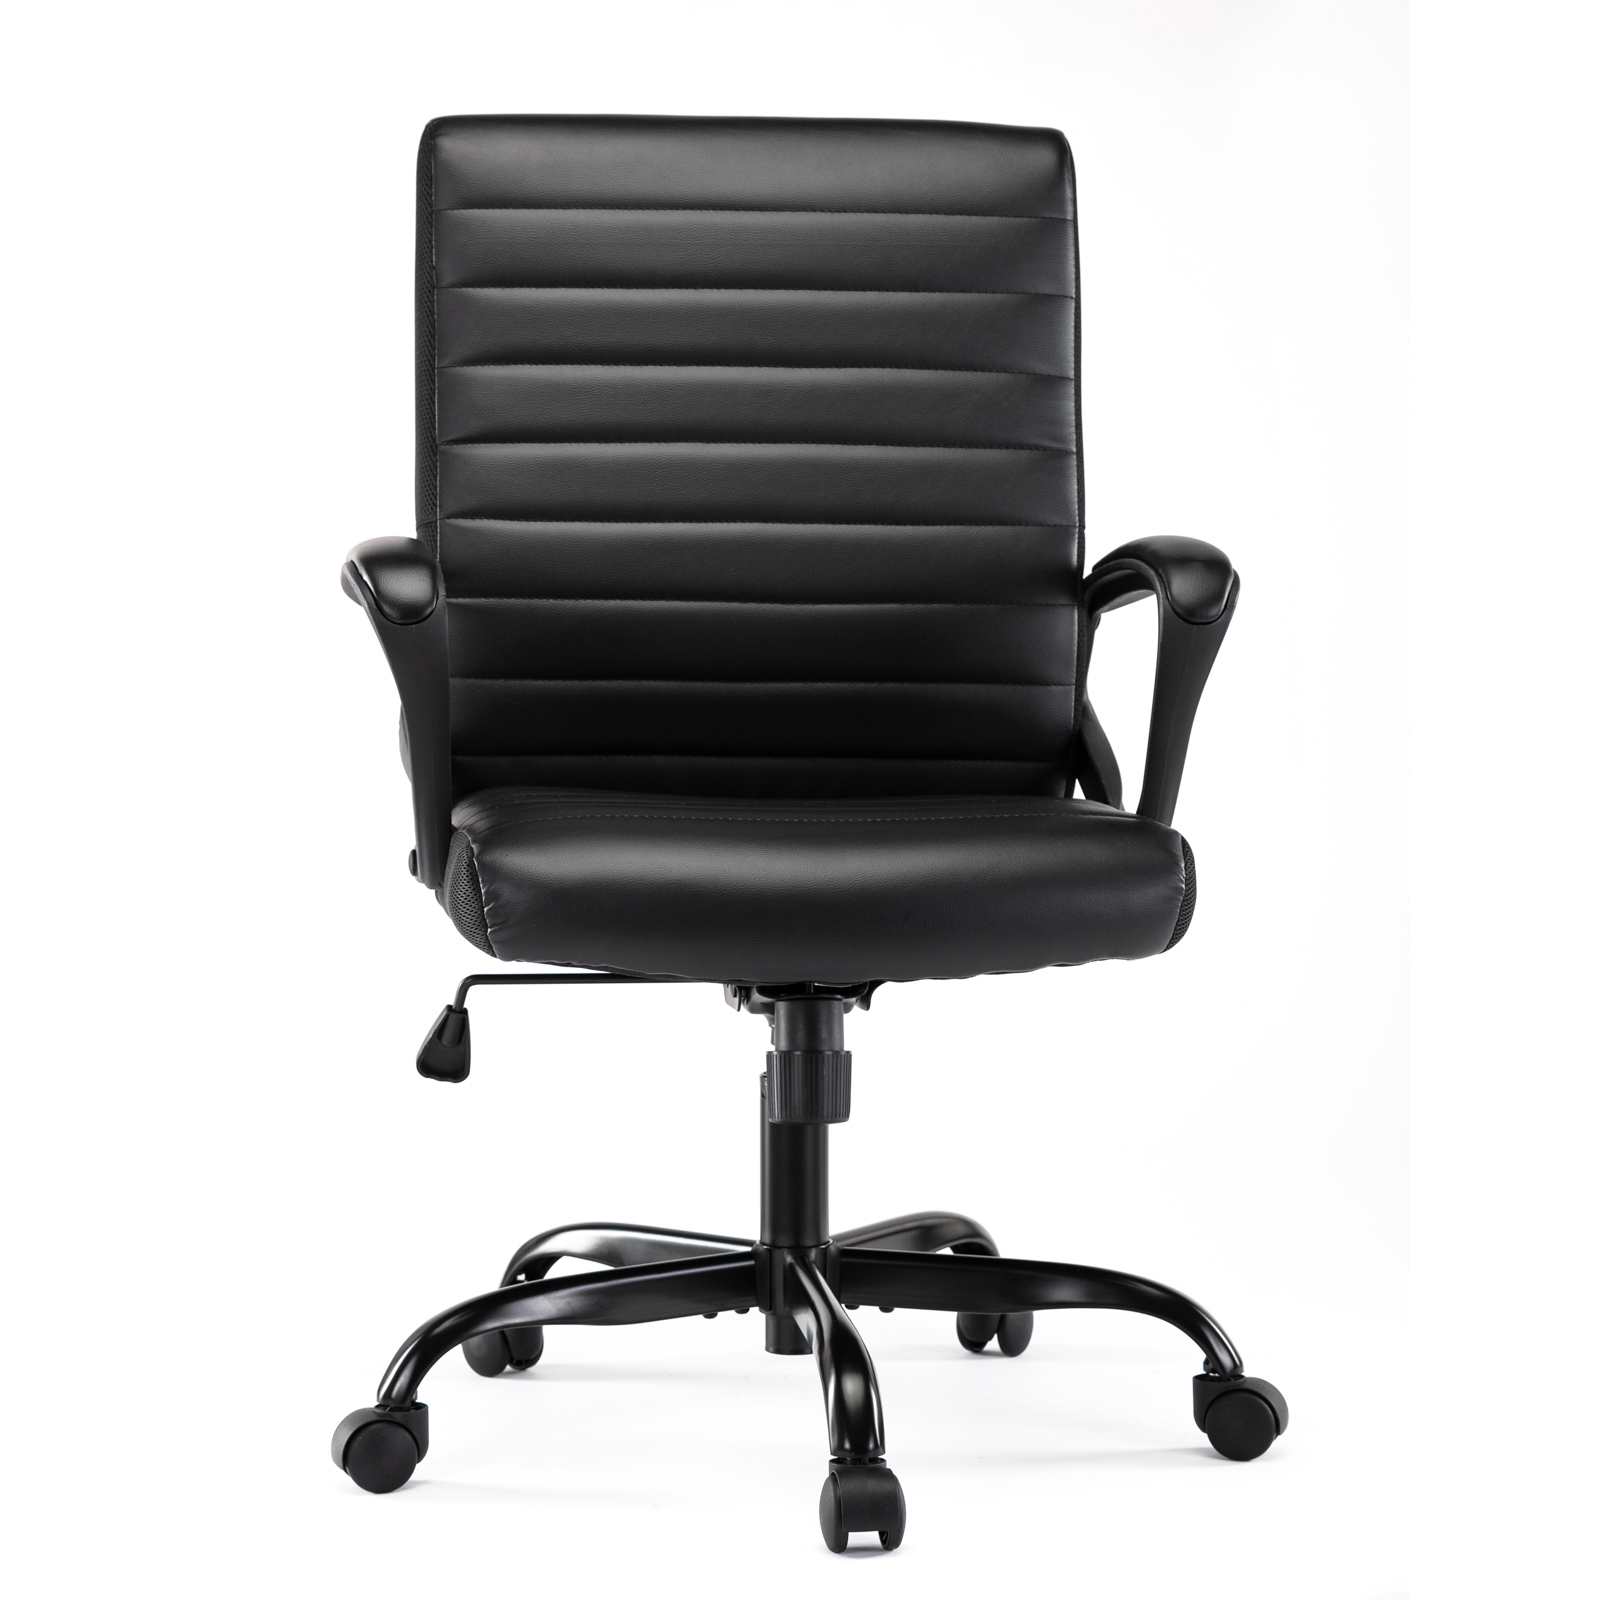 USA STOCK Ergonomic Executive Bonded Leather Computer Chair,Office Chair, Desk Chair